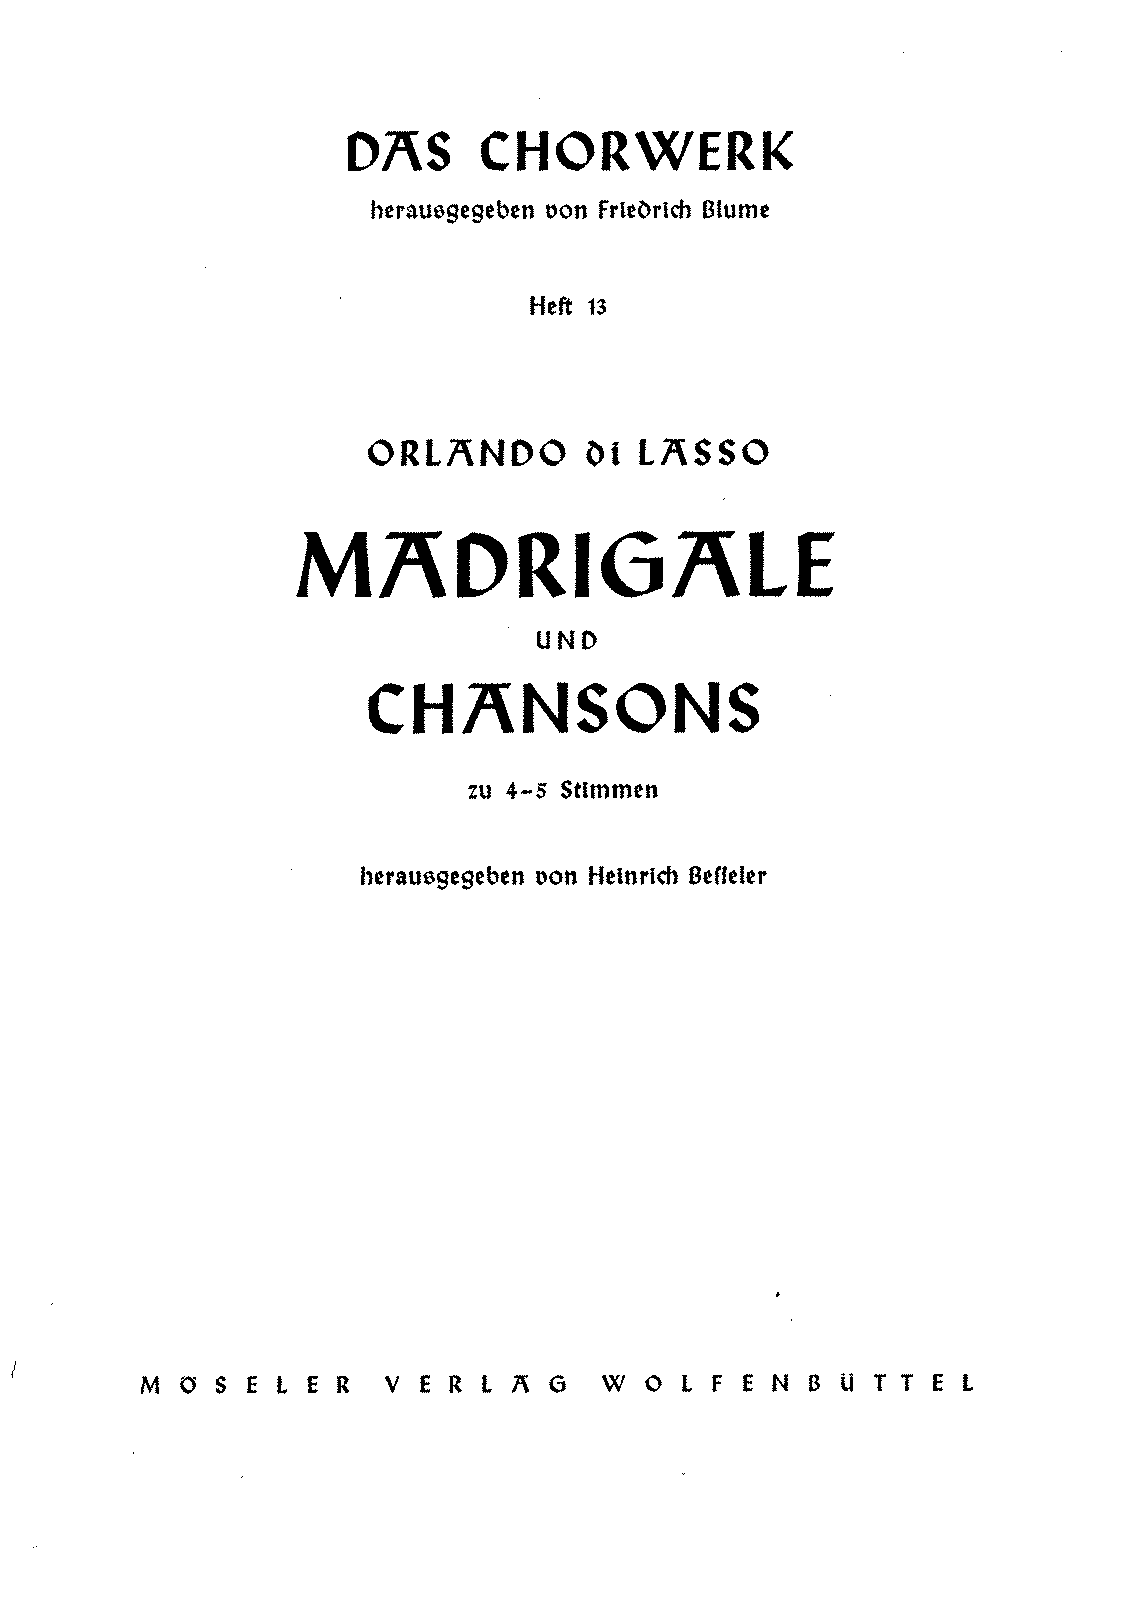 PMLP98987-Das Chorwerk 013 - Orlando di Lasso - Madrigals and Chansons a 4-5 voices.pdf